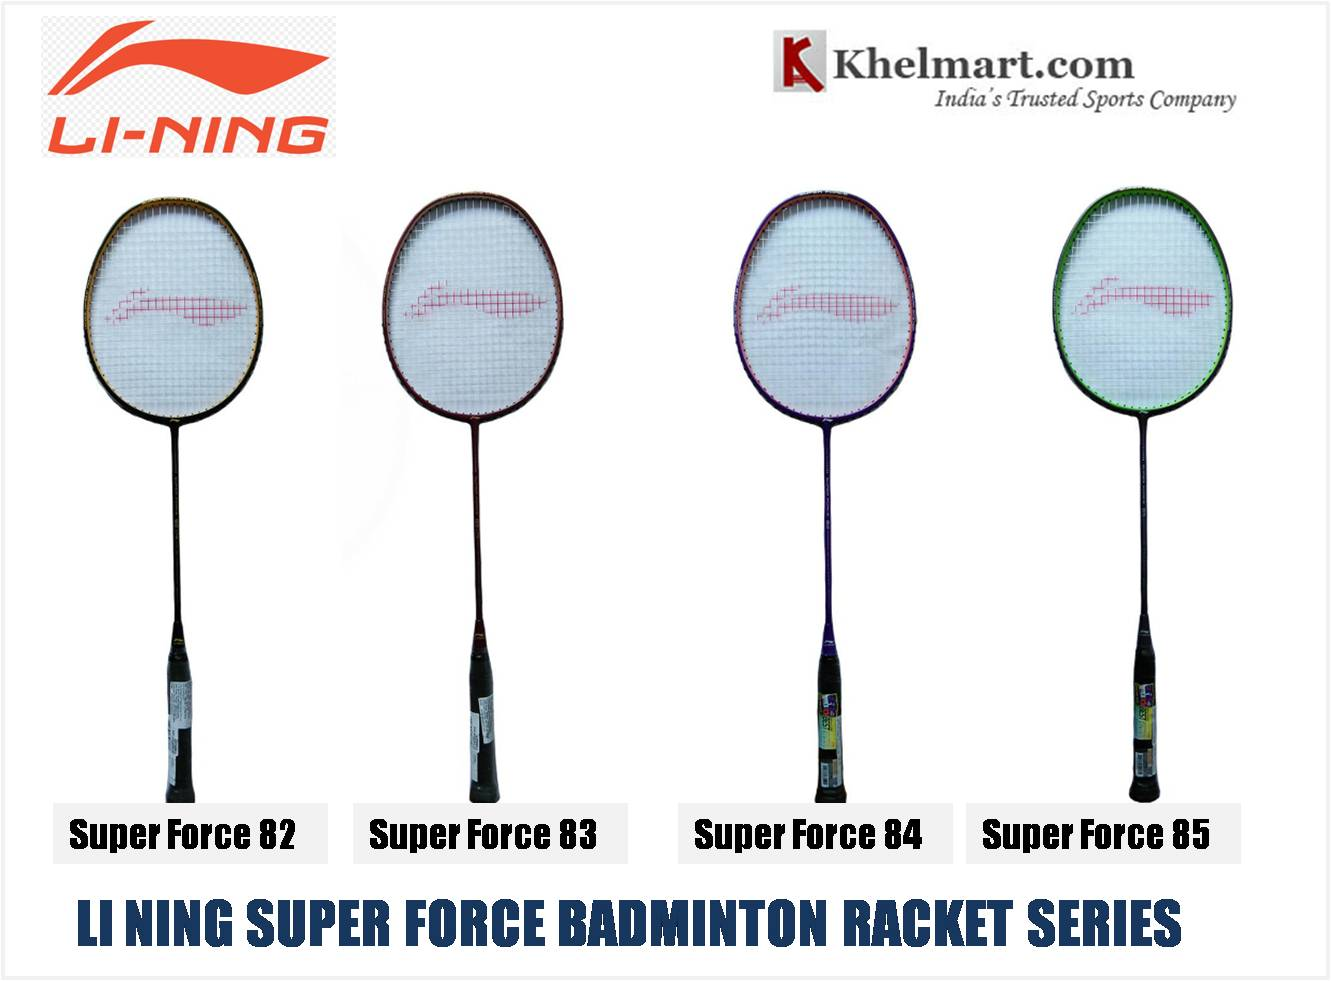 LI_NING_SUPER_FORCE_BADMINTON_RACKET_SERIES_by_Khelmart